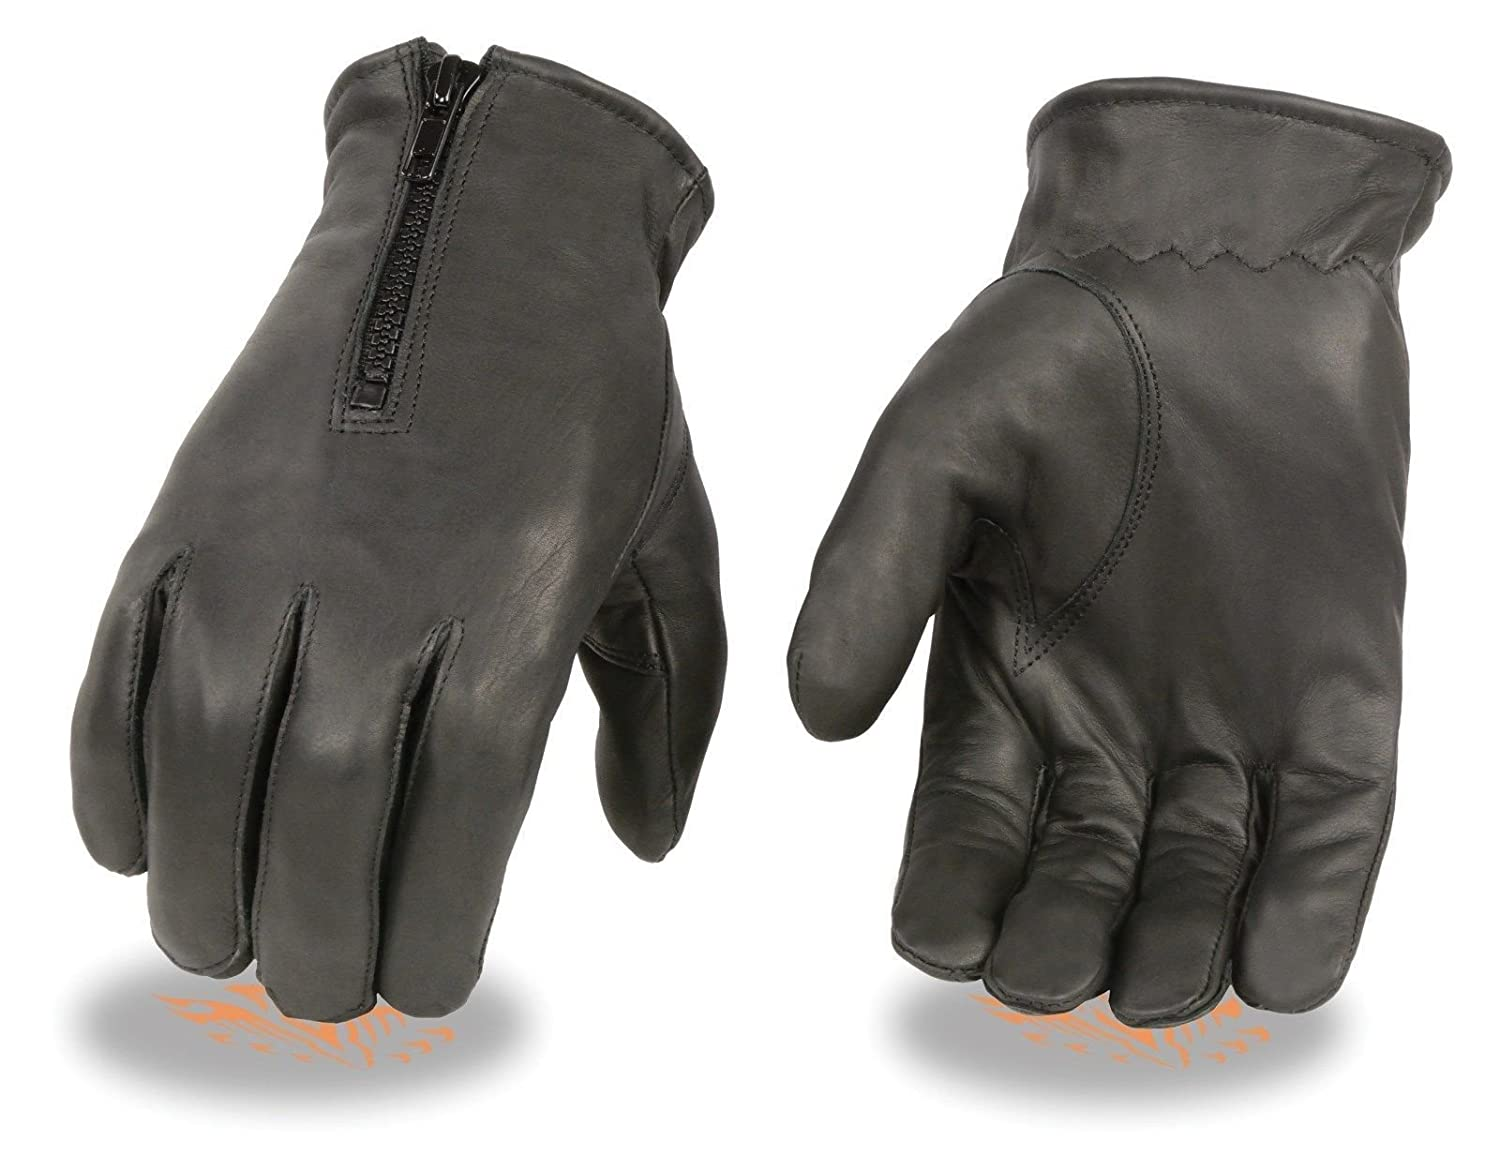 Ladies unlined black Leather gloves by Milwaukee Leather, very soft genuine goat Leather driving gloves, Wrist length with zipper closure, elastic on wrist for comfortable fit (M) Unbranded